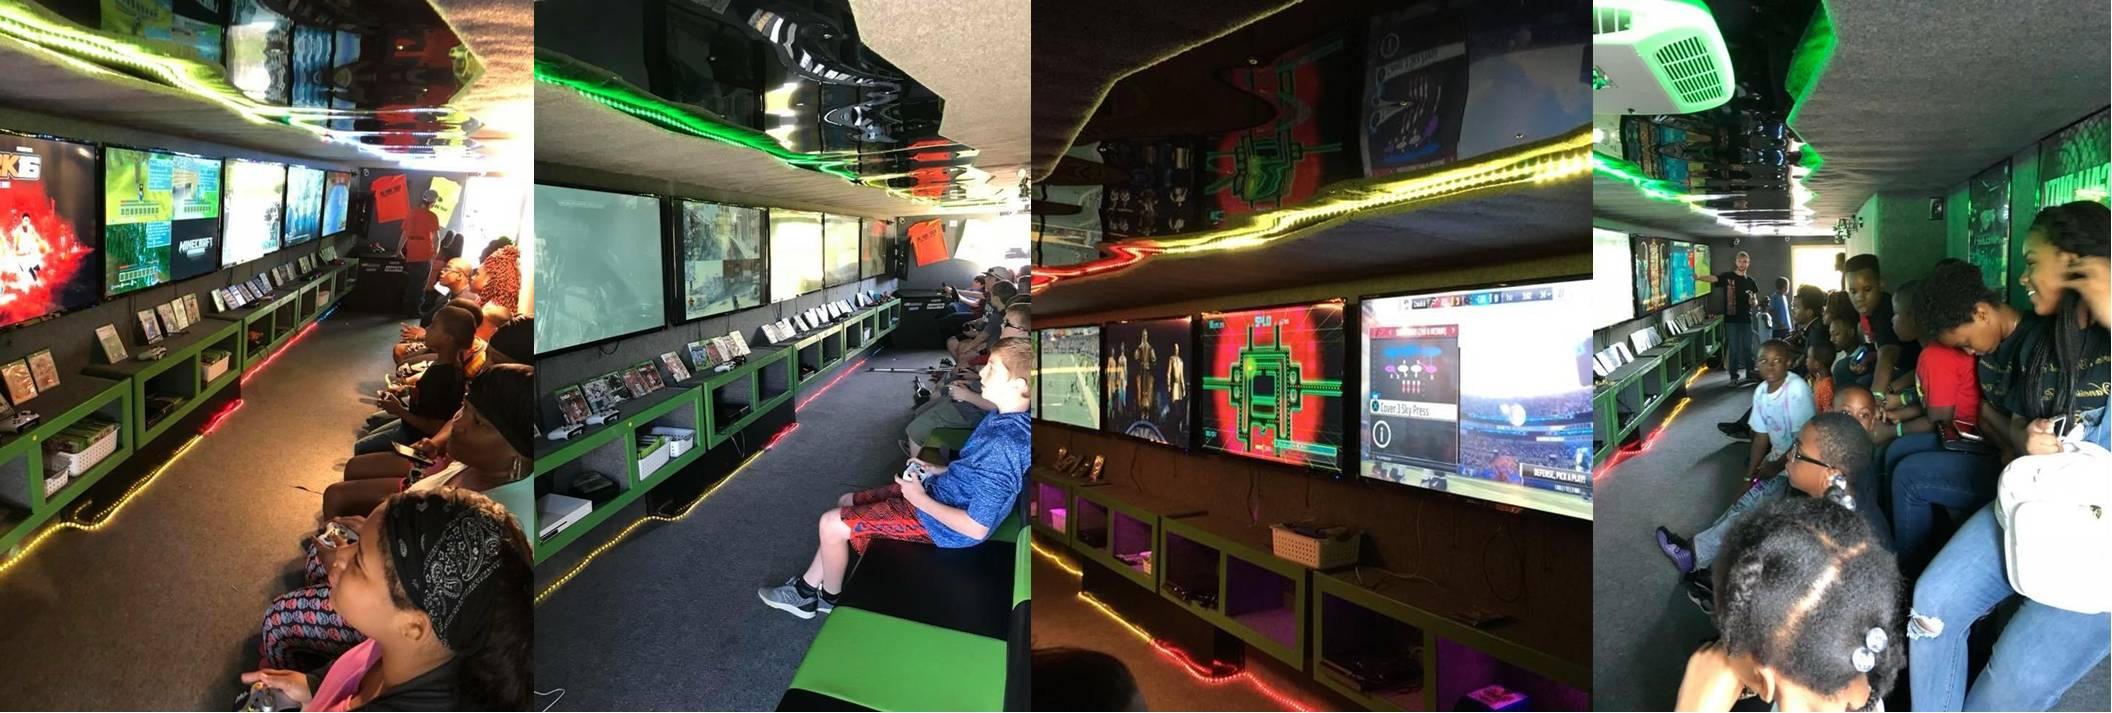 Video game truck birthday party in Mississippi and Alabama